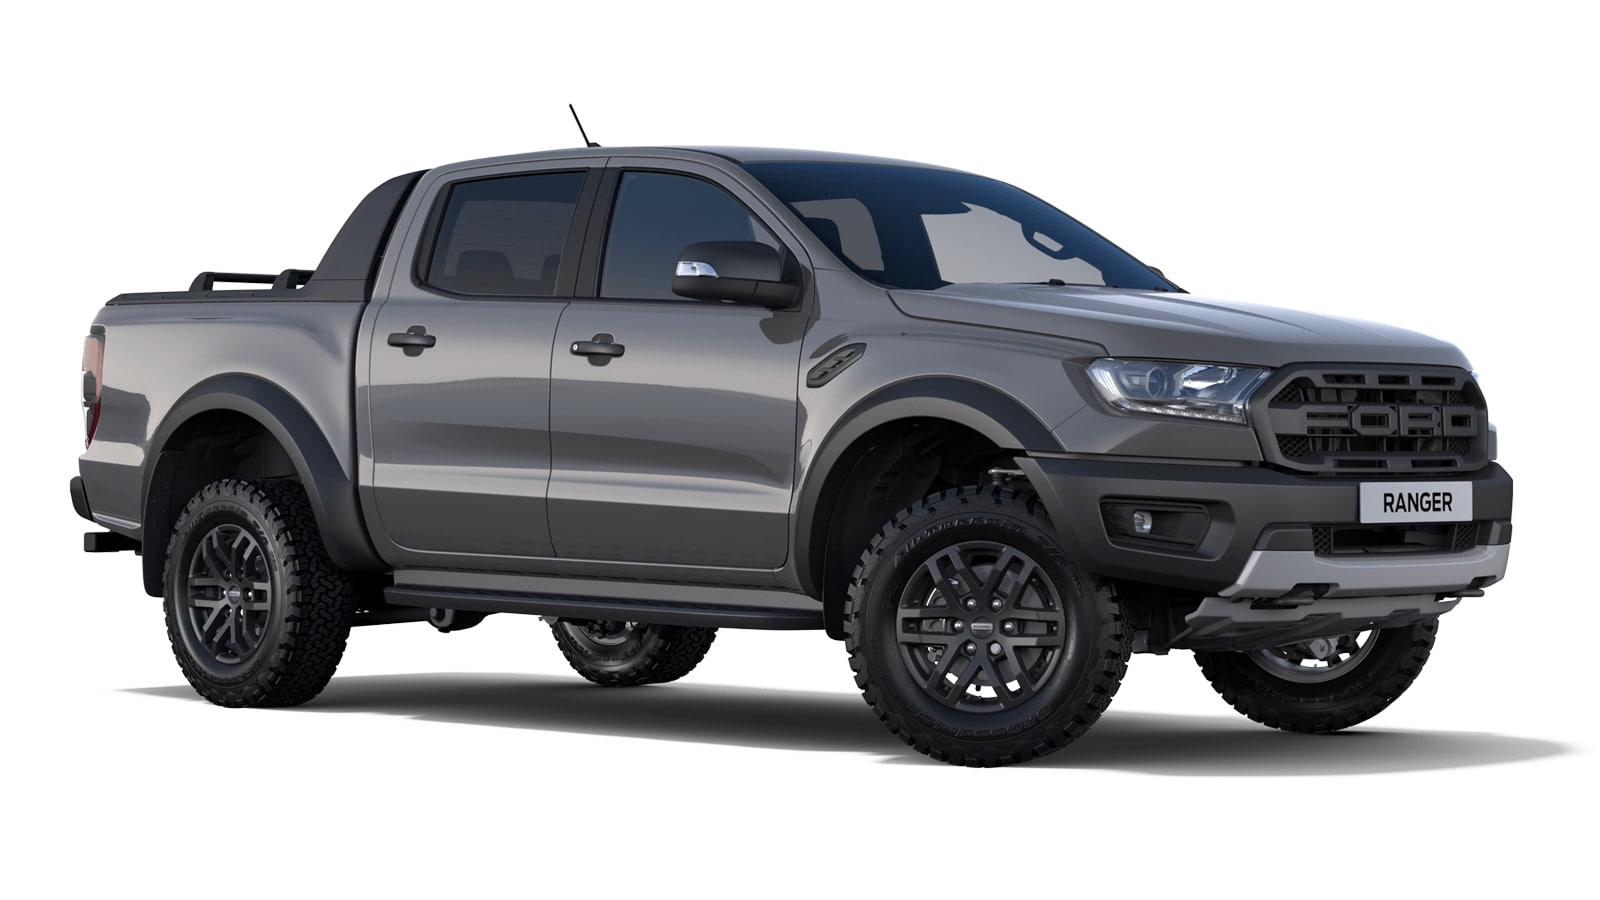 NEW RANGER RAPTOR Raptor Double Cab in Conquer Grey